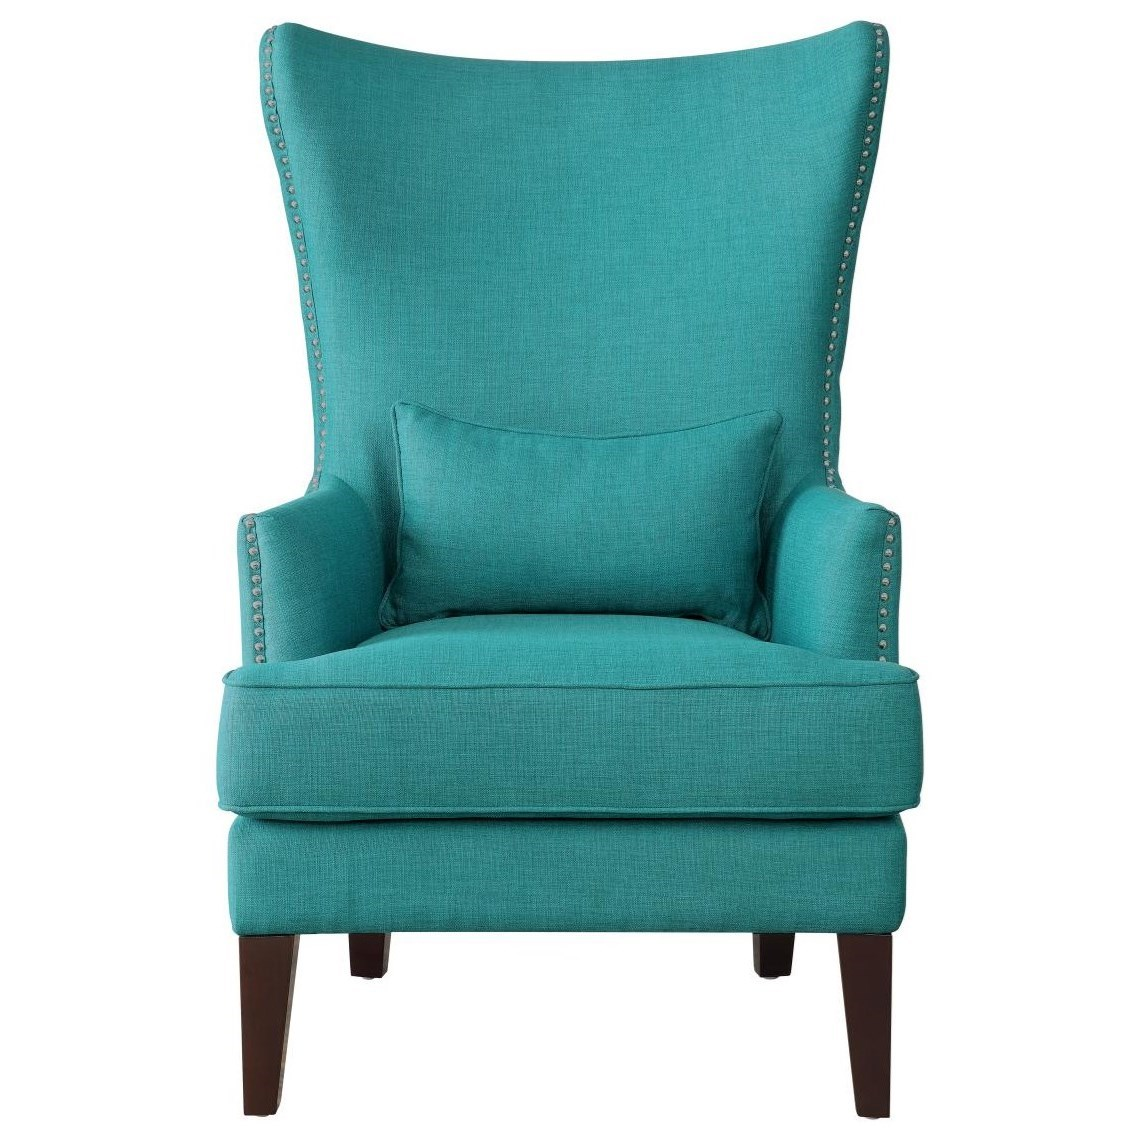 Avina Accent Chair by Homelegance at Rife's Home Furniture